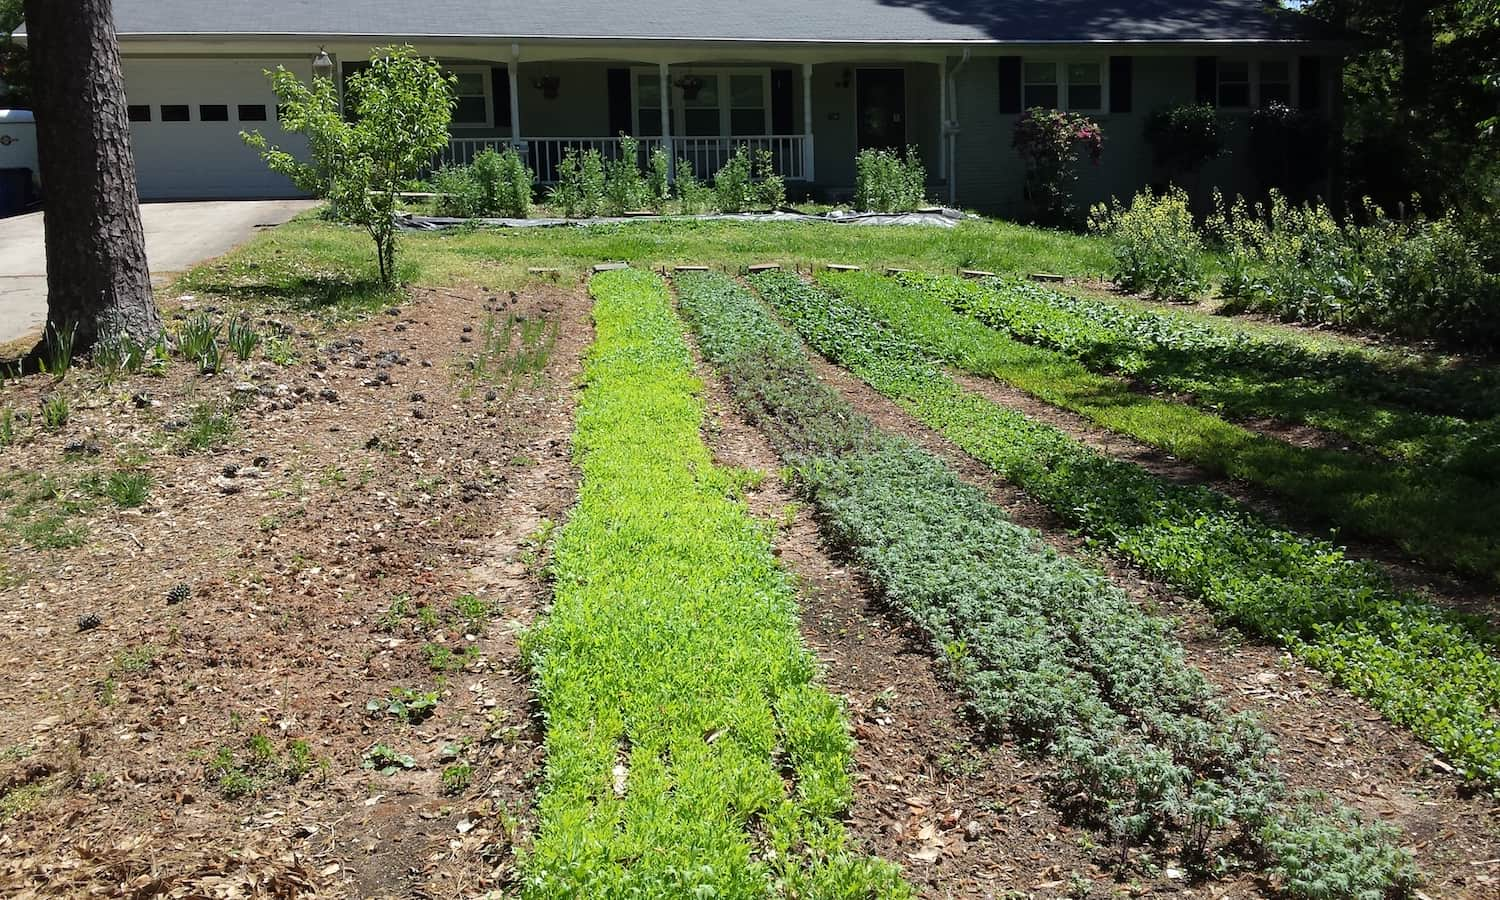 As a multi-locational market garden, Grow with the Flow presents its successful business model and how the community stepped up to support a hyper-local food source for the City of Tucker, Georgia.